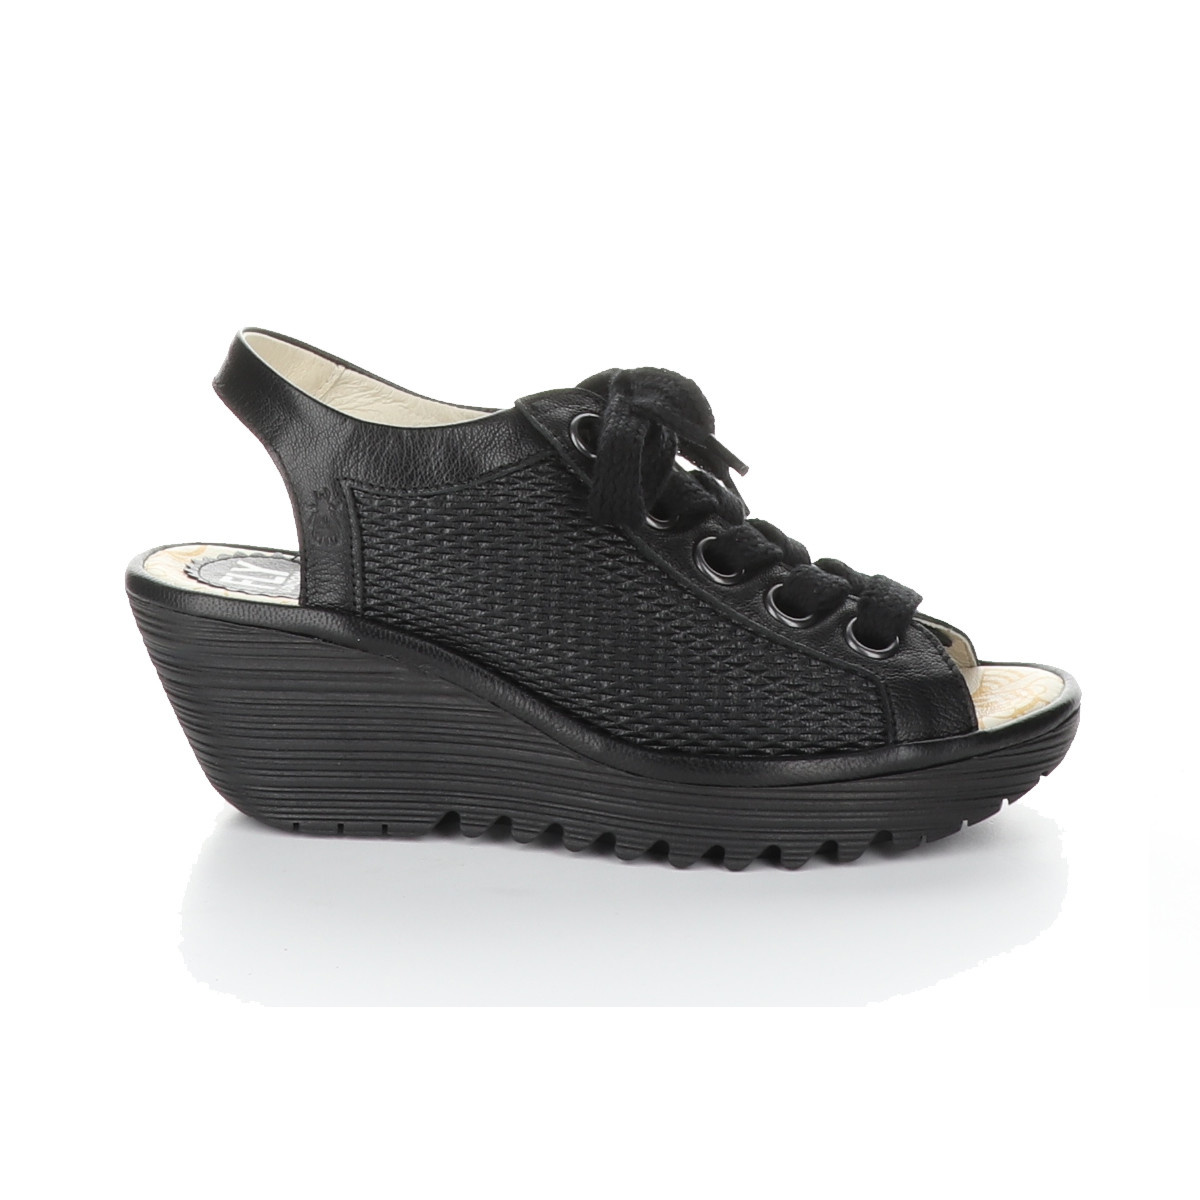 Fly London Fly London Women's Yoli Black